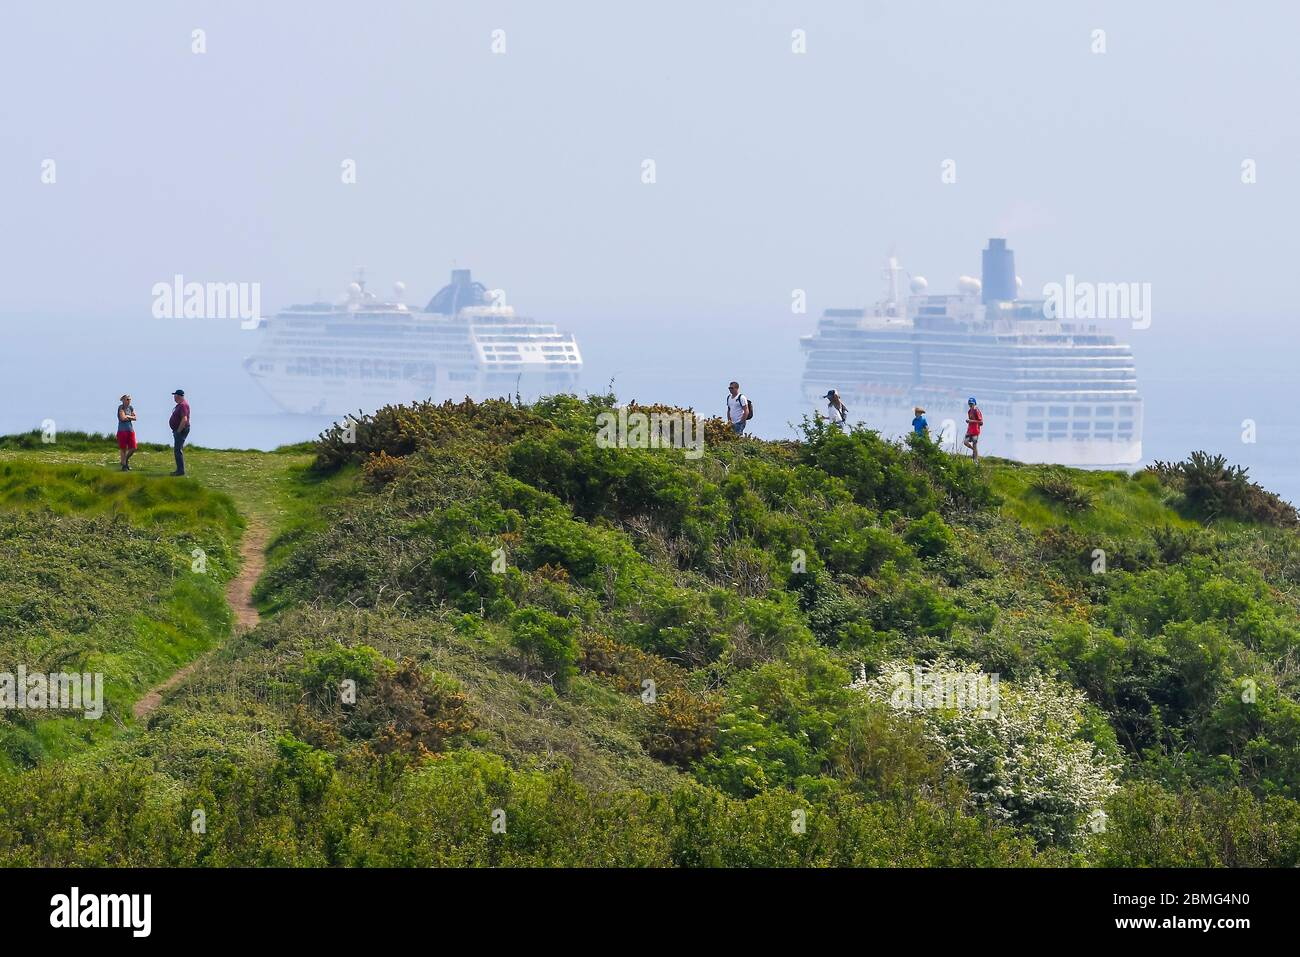 Weymouth, Dorset, UK.  9th May 2020.  UK Weather:   Walkers on the cliff top on the South West Coast Path with a view of the five cruise ships anchored in the bay off the coast of the seaside resort of Weymouth in Dorset on a hot sunny day due to the cruising industry shutting down during the coronavirus lockdown.  There are four P&O ships which are The Oceana, Aurora, Arcadia and Ventura and one Cunard ship the liner Queen Mary 2.  (Oceana and Arcadia pictured) Picture Credit: Graham Hunt/Alamy Live News Stock Photo